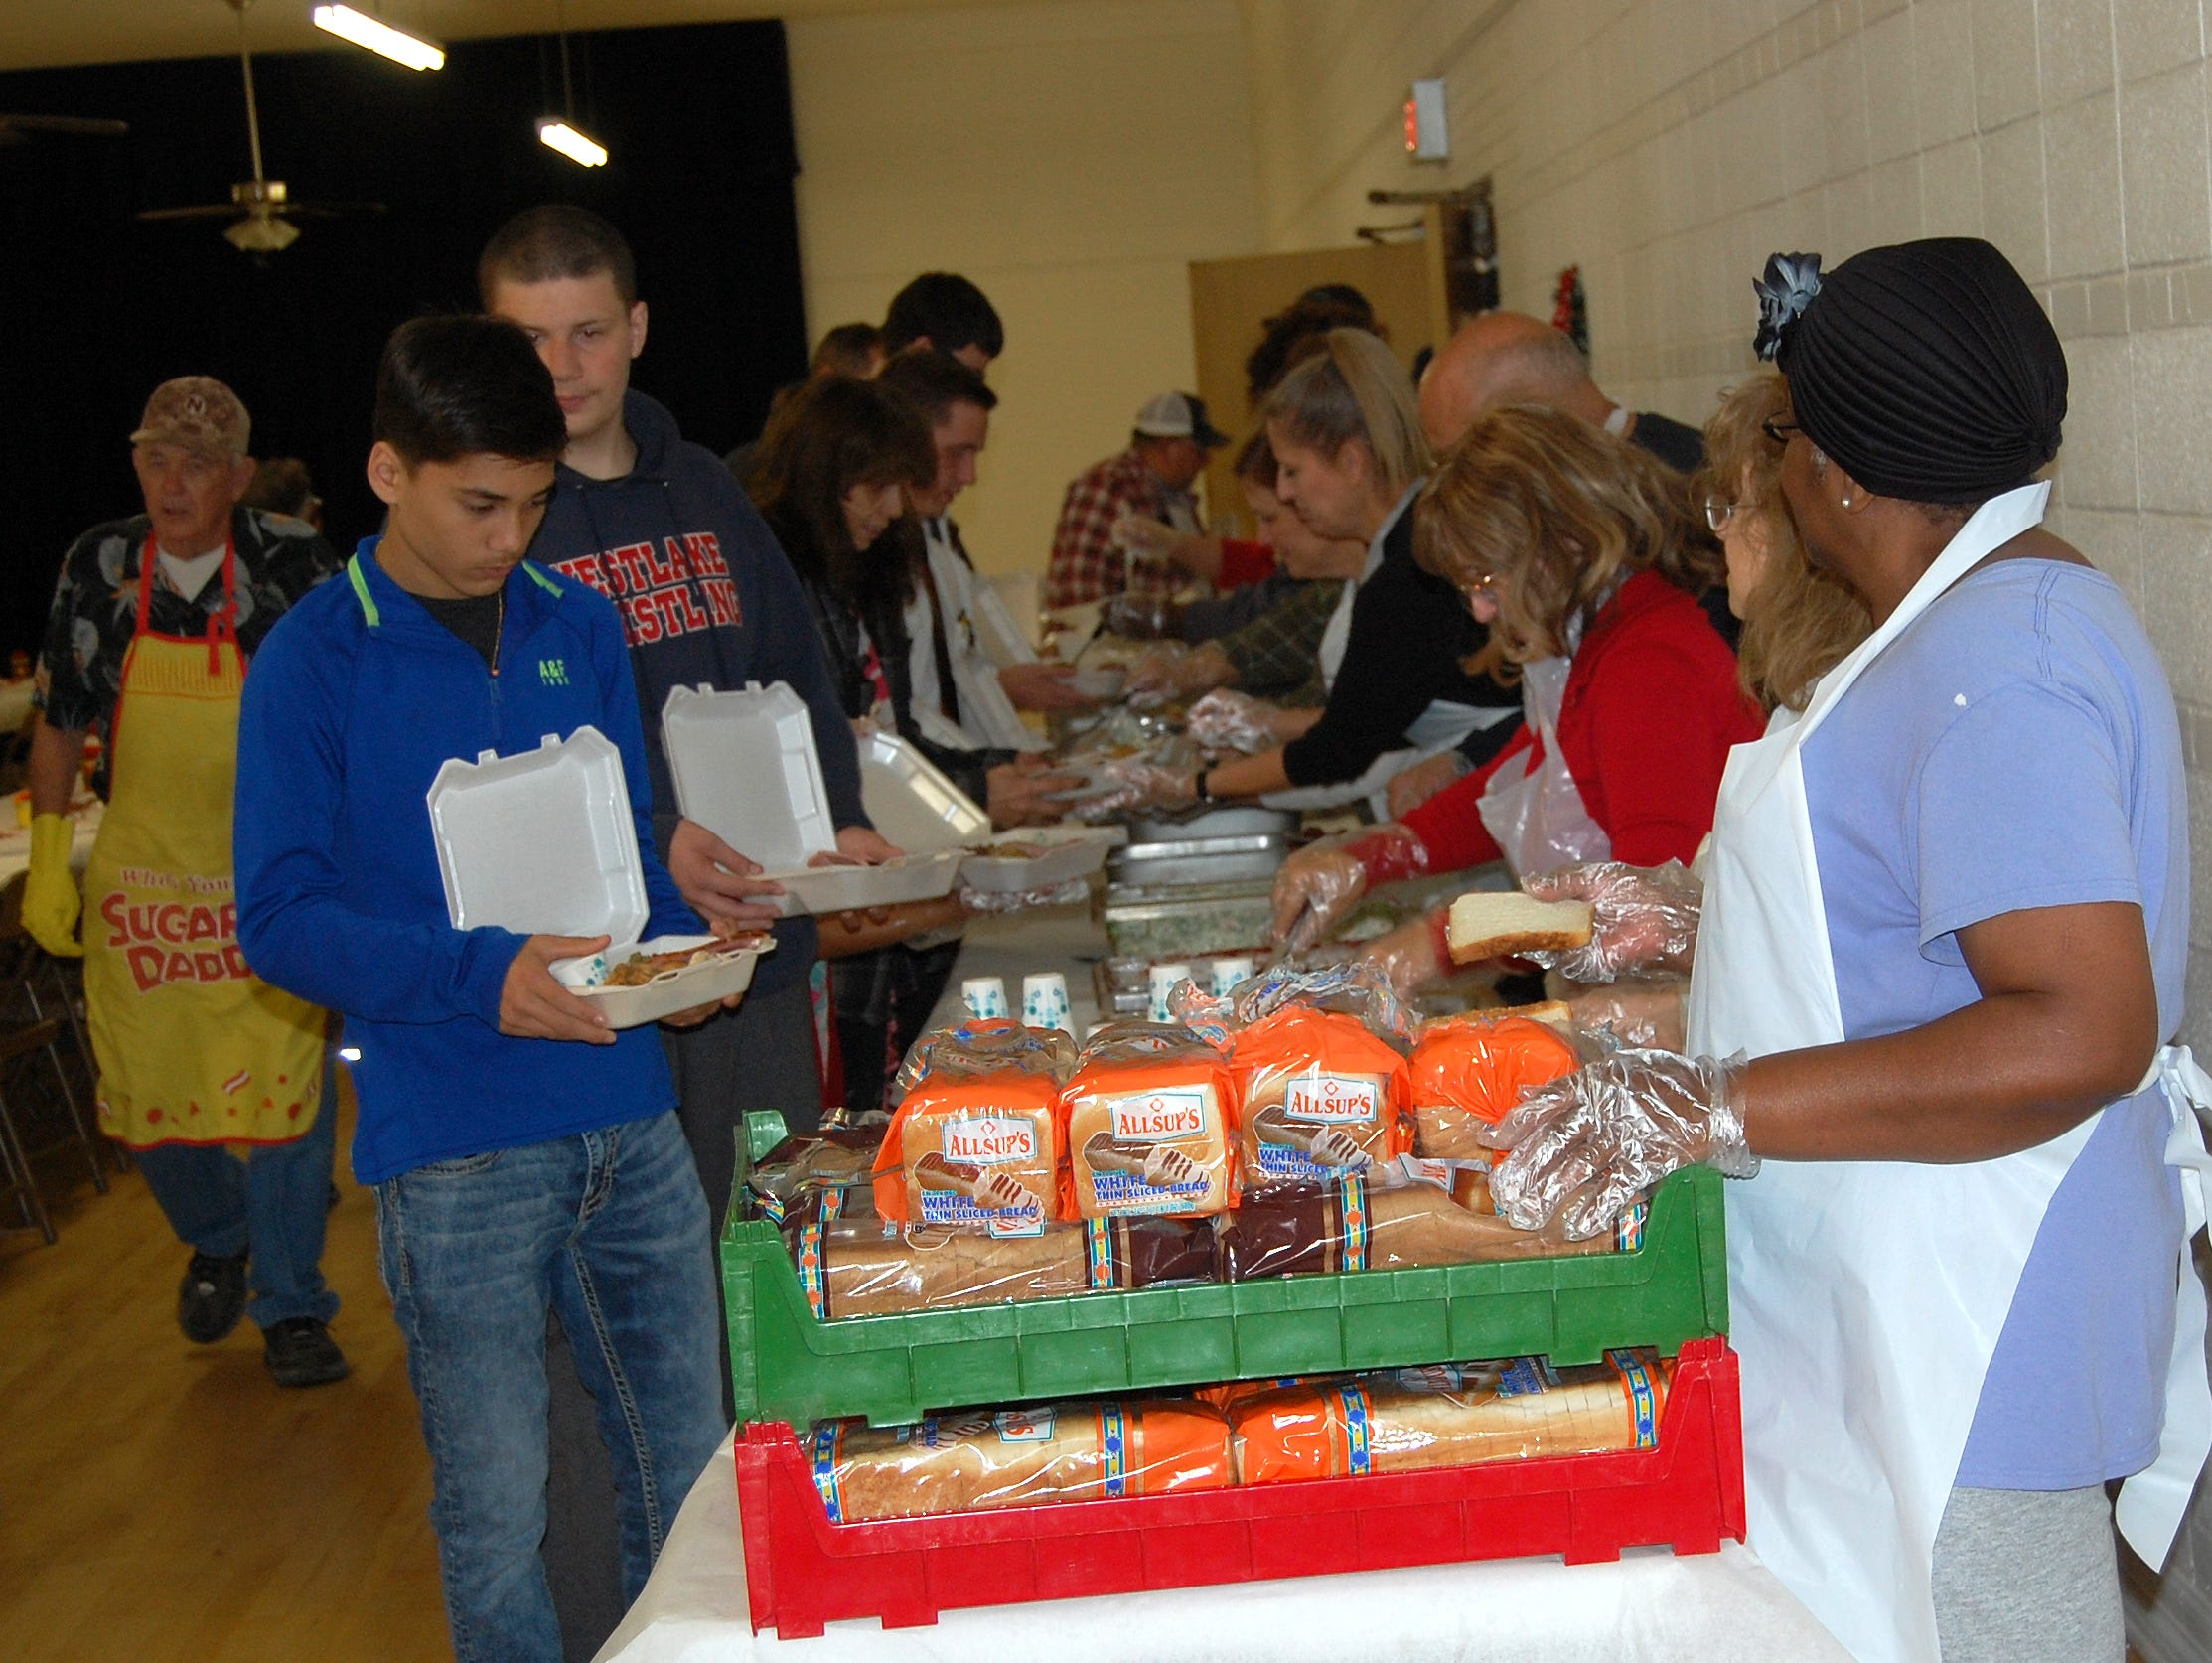 Some 136 meals were served by volunteers at Wilbarger Memorial Auditorium Nov. 22, 2018, as part of the thirty-second annual free Thanksgiving Holiday Spirit Meal program. Another 161 meals were prepared as to go meals by those attending.